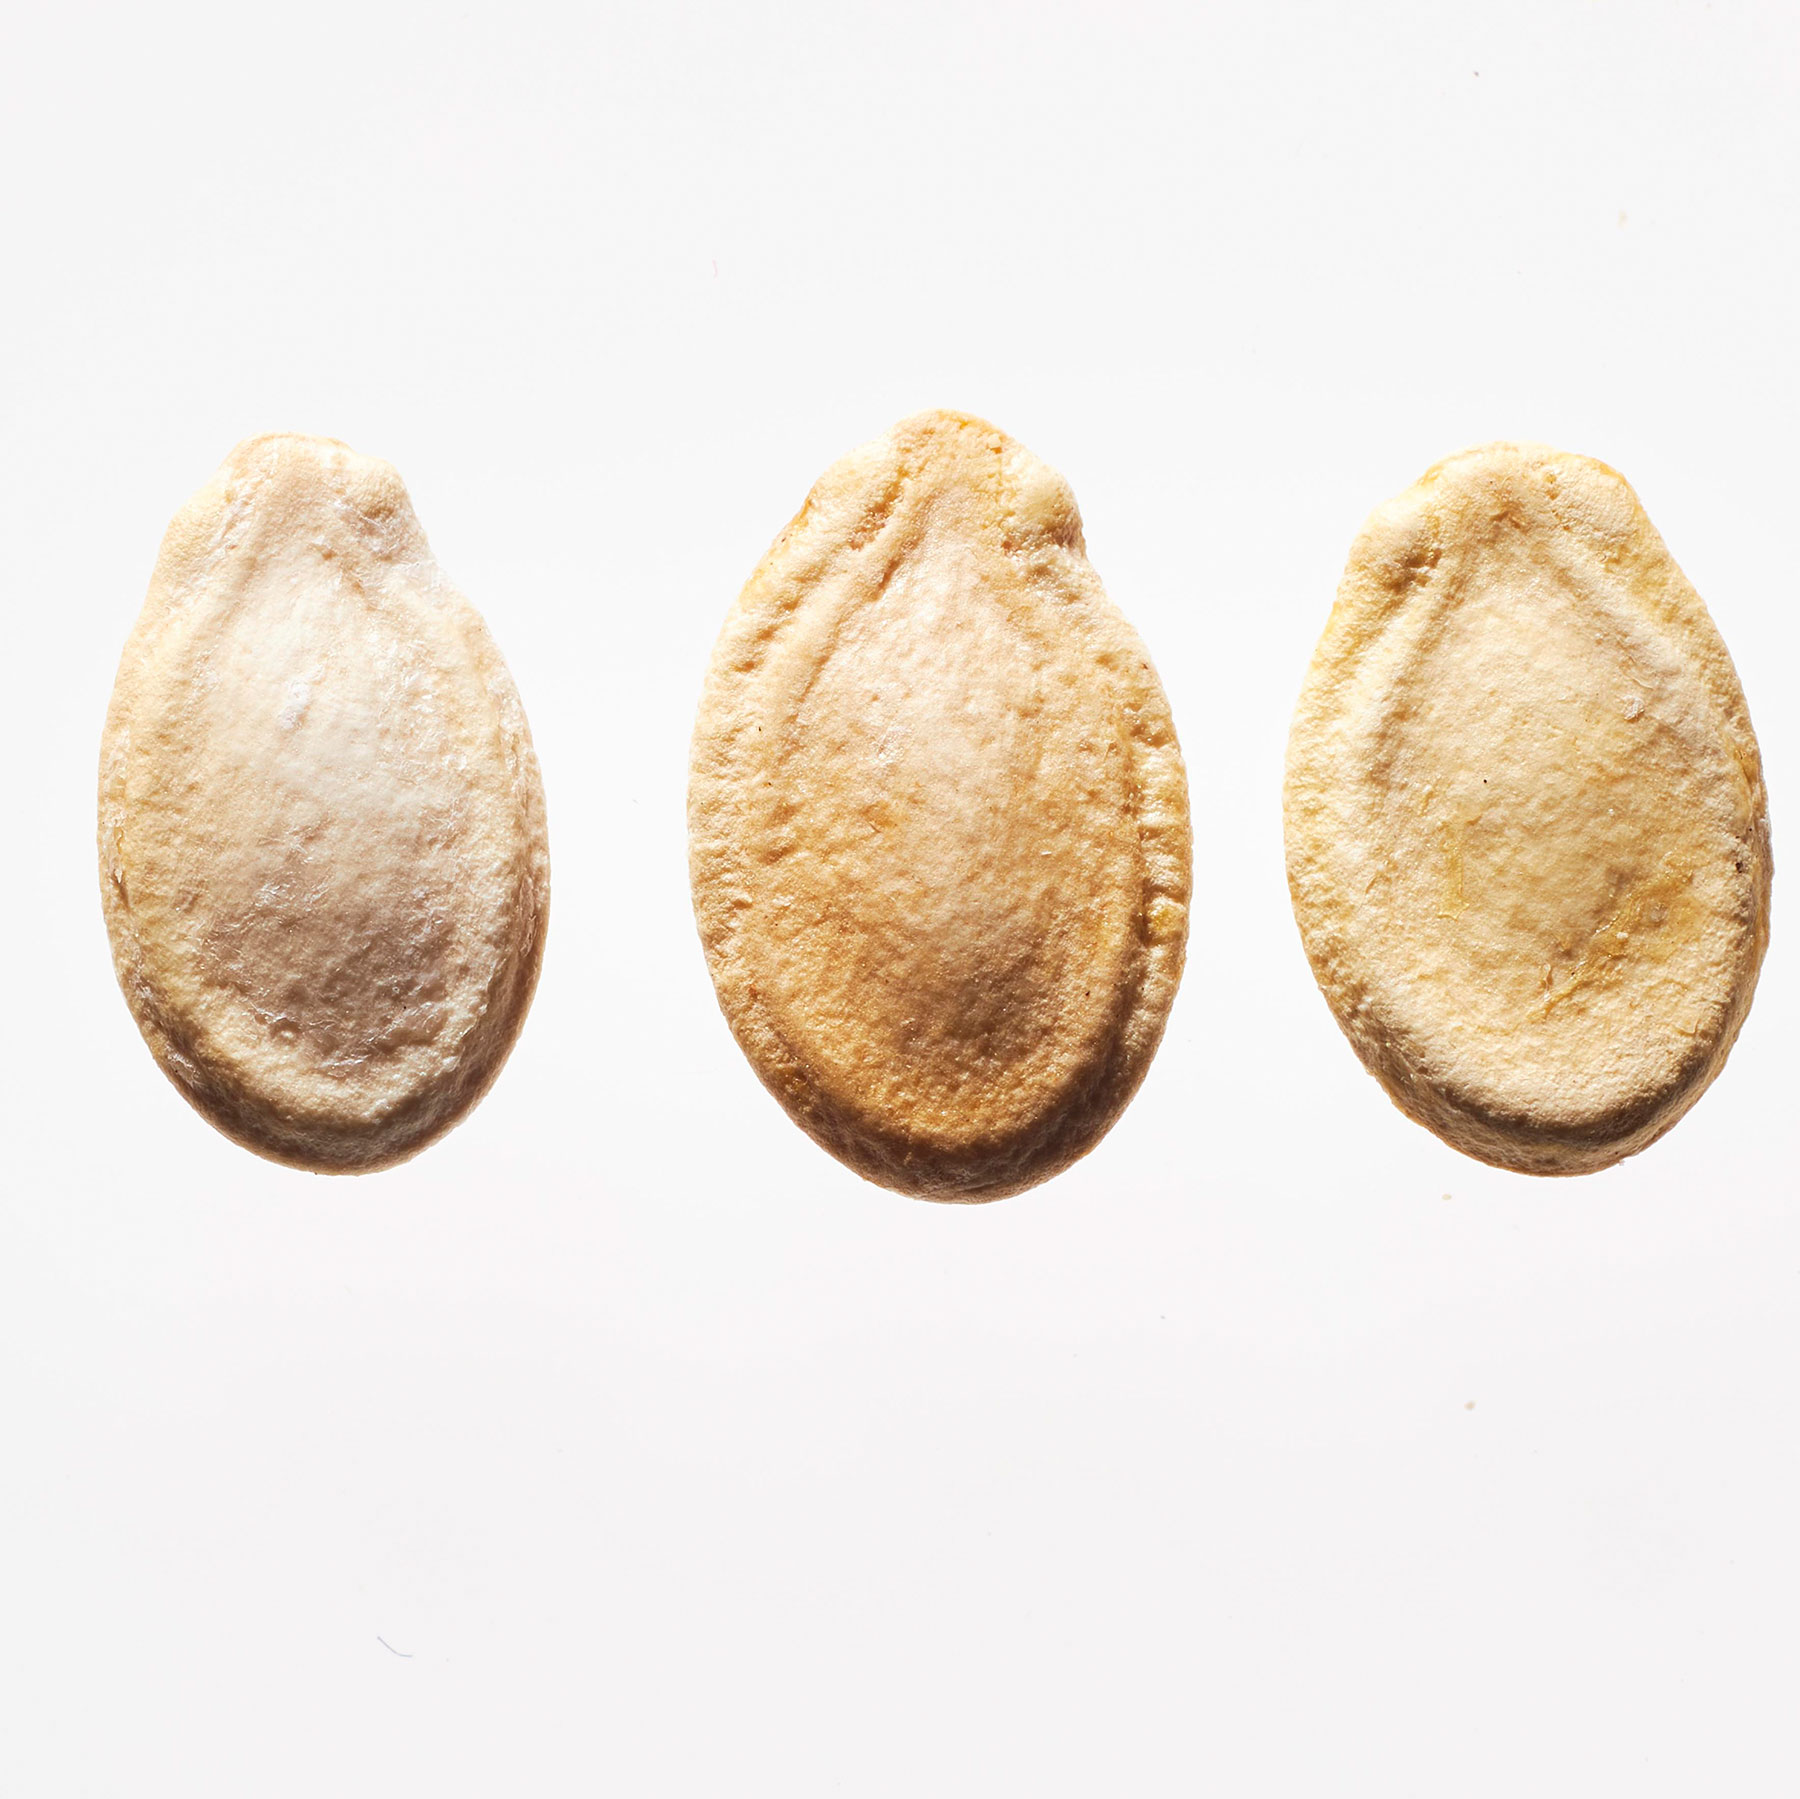 Superfoods to Know About: Seeds